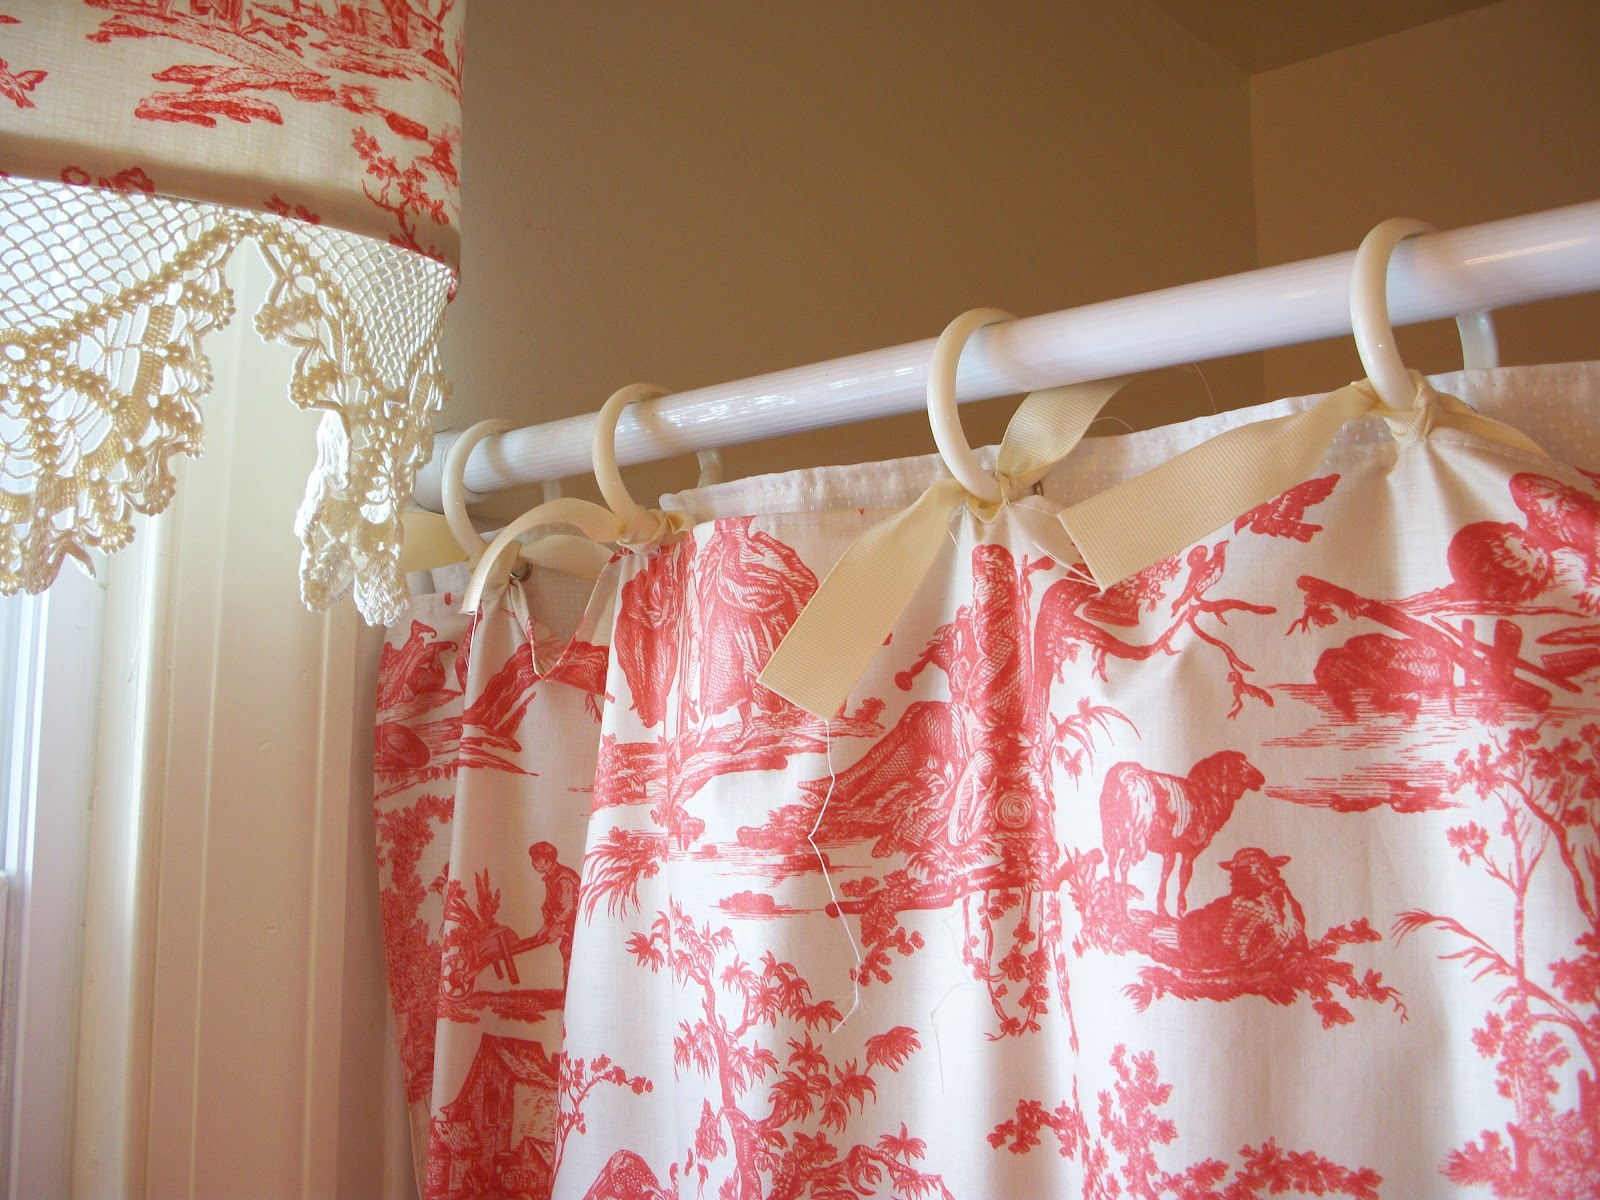 How To Match Rugs And Curtains Red Toile Tablecloth